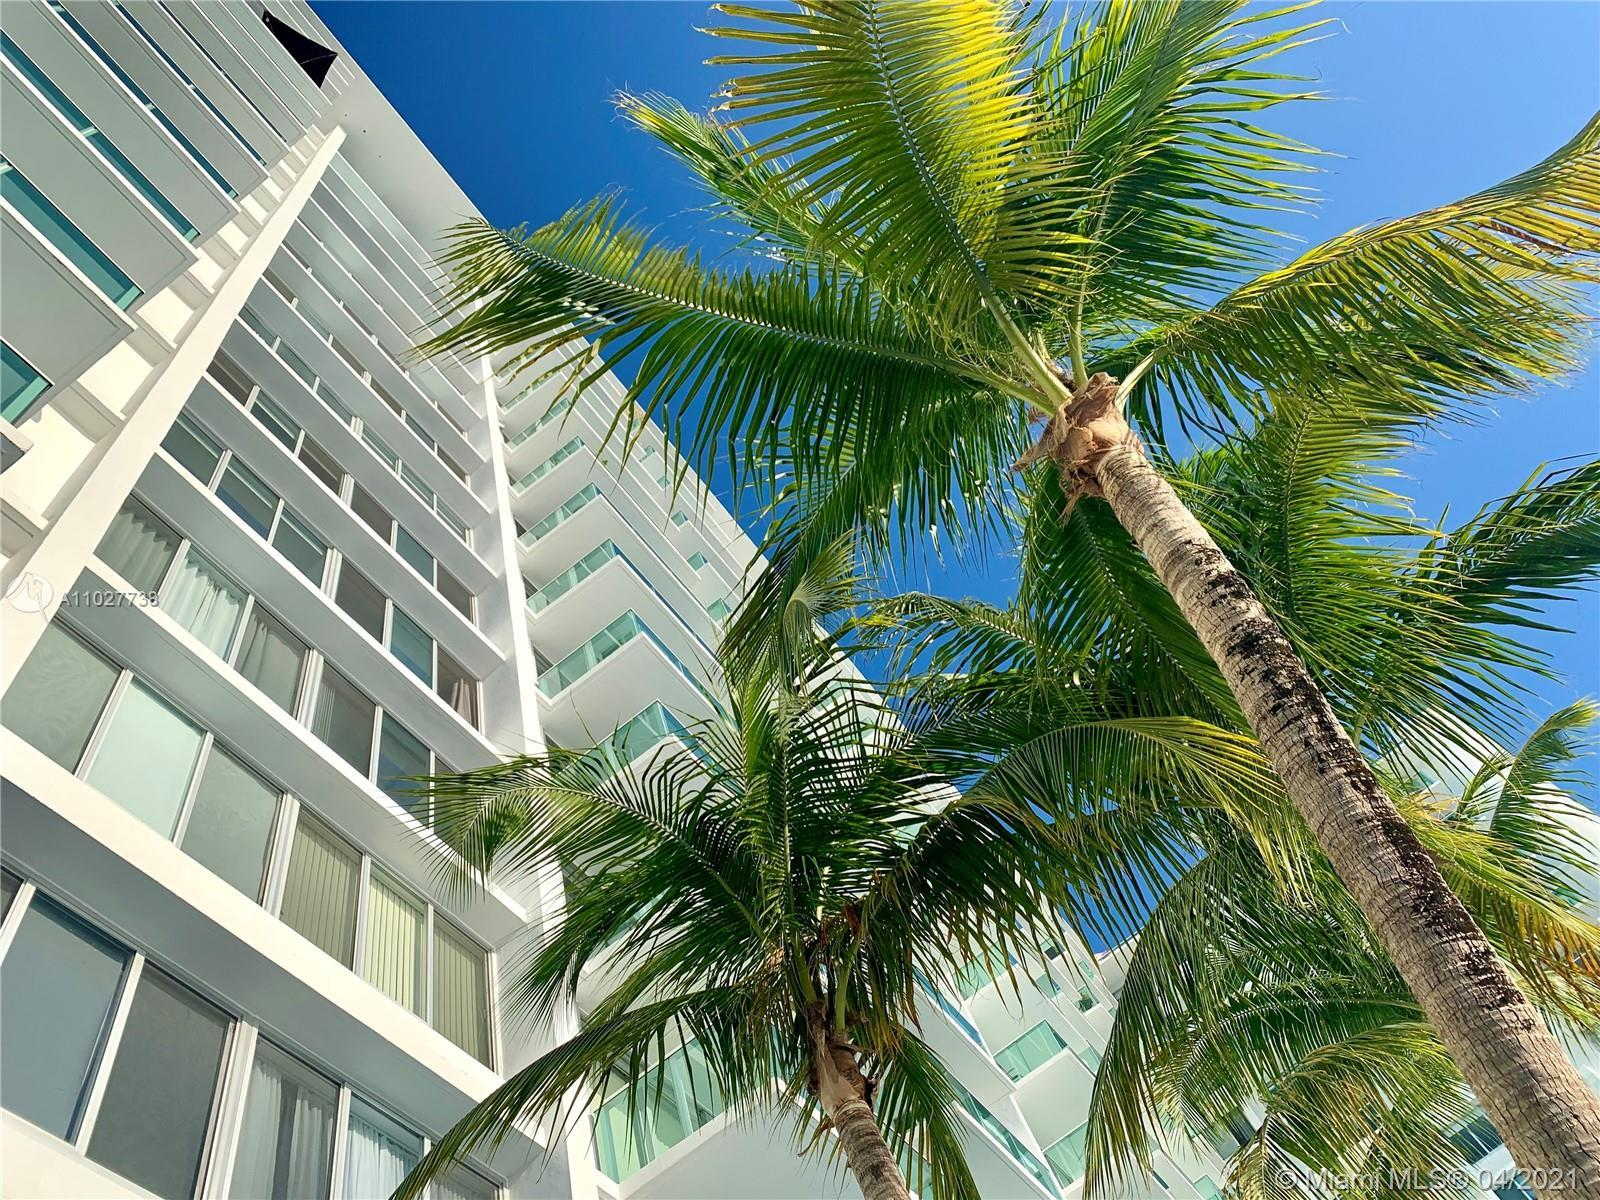 Welcome to the Mirador 1000, one of SoBe's most popular and well-established condo buildings. Unit 5